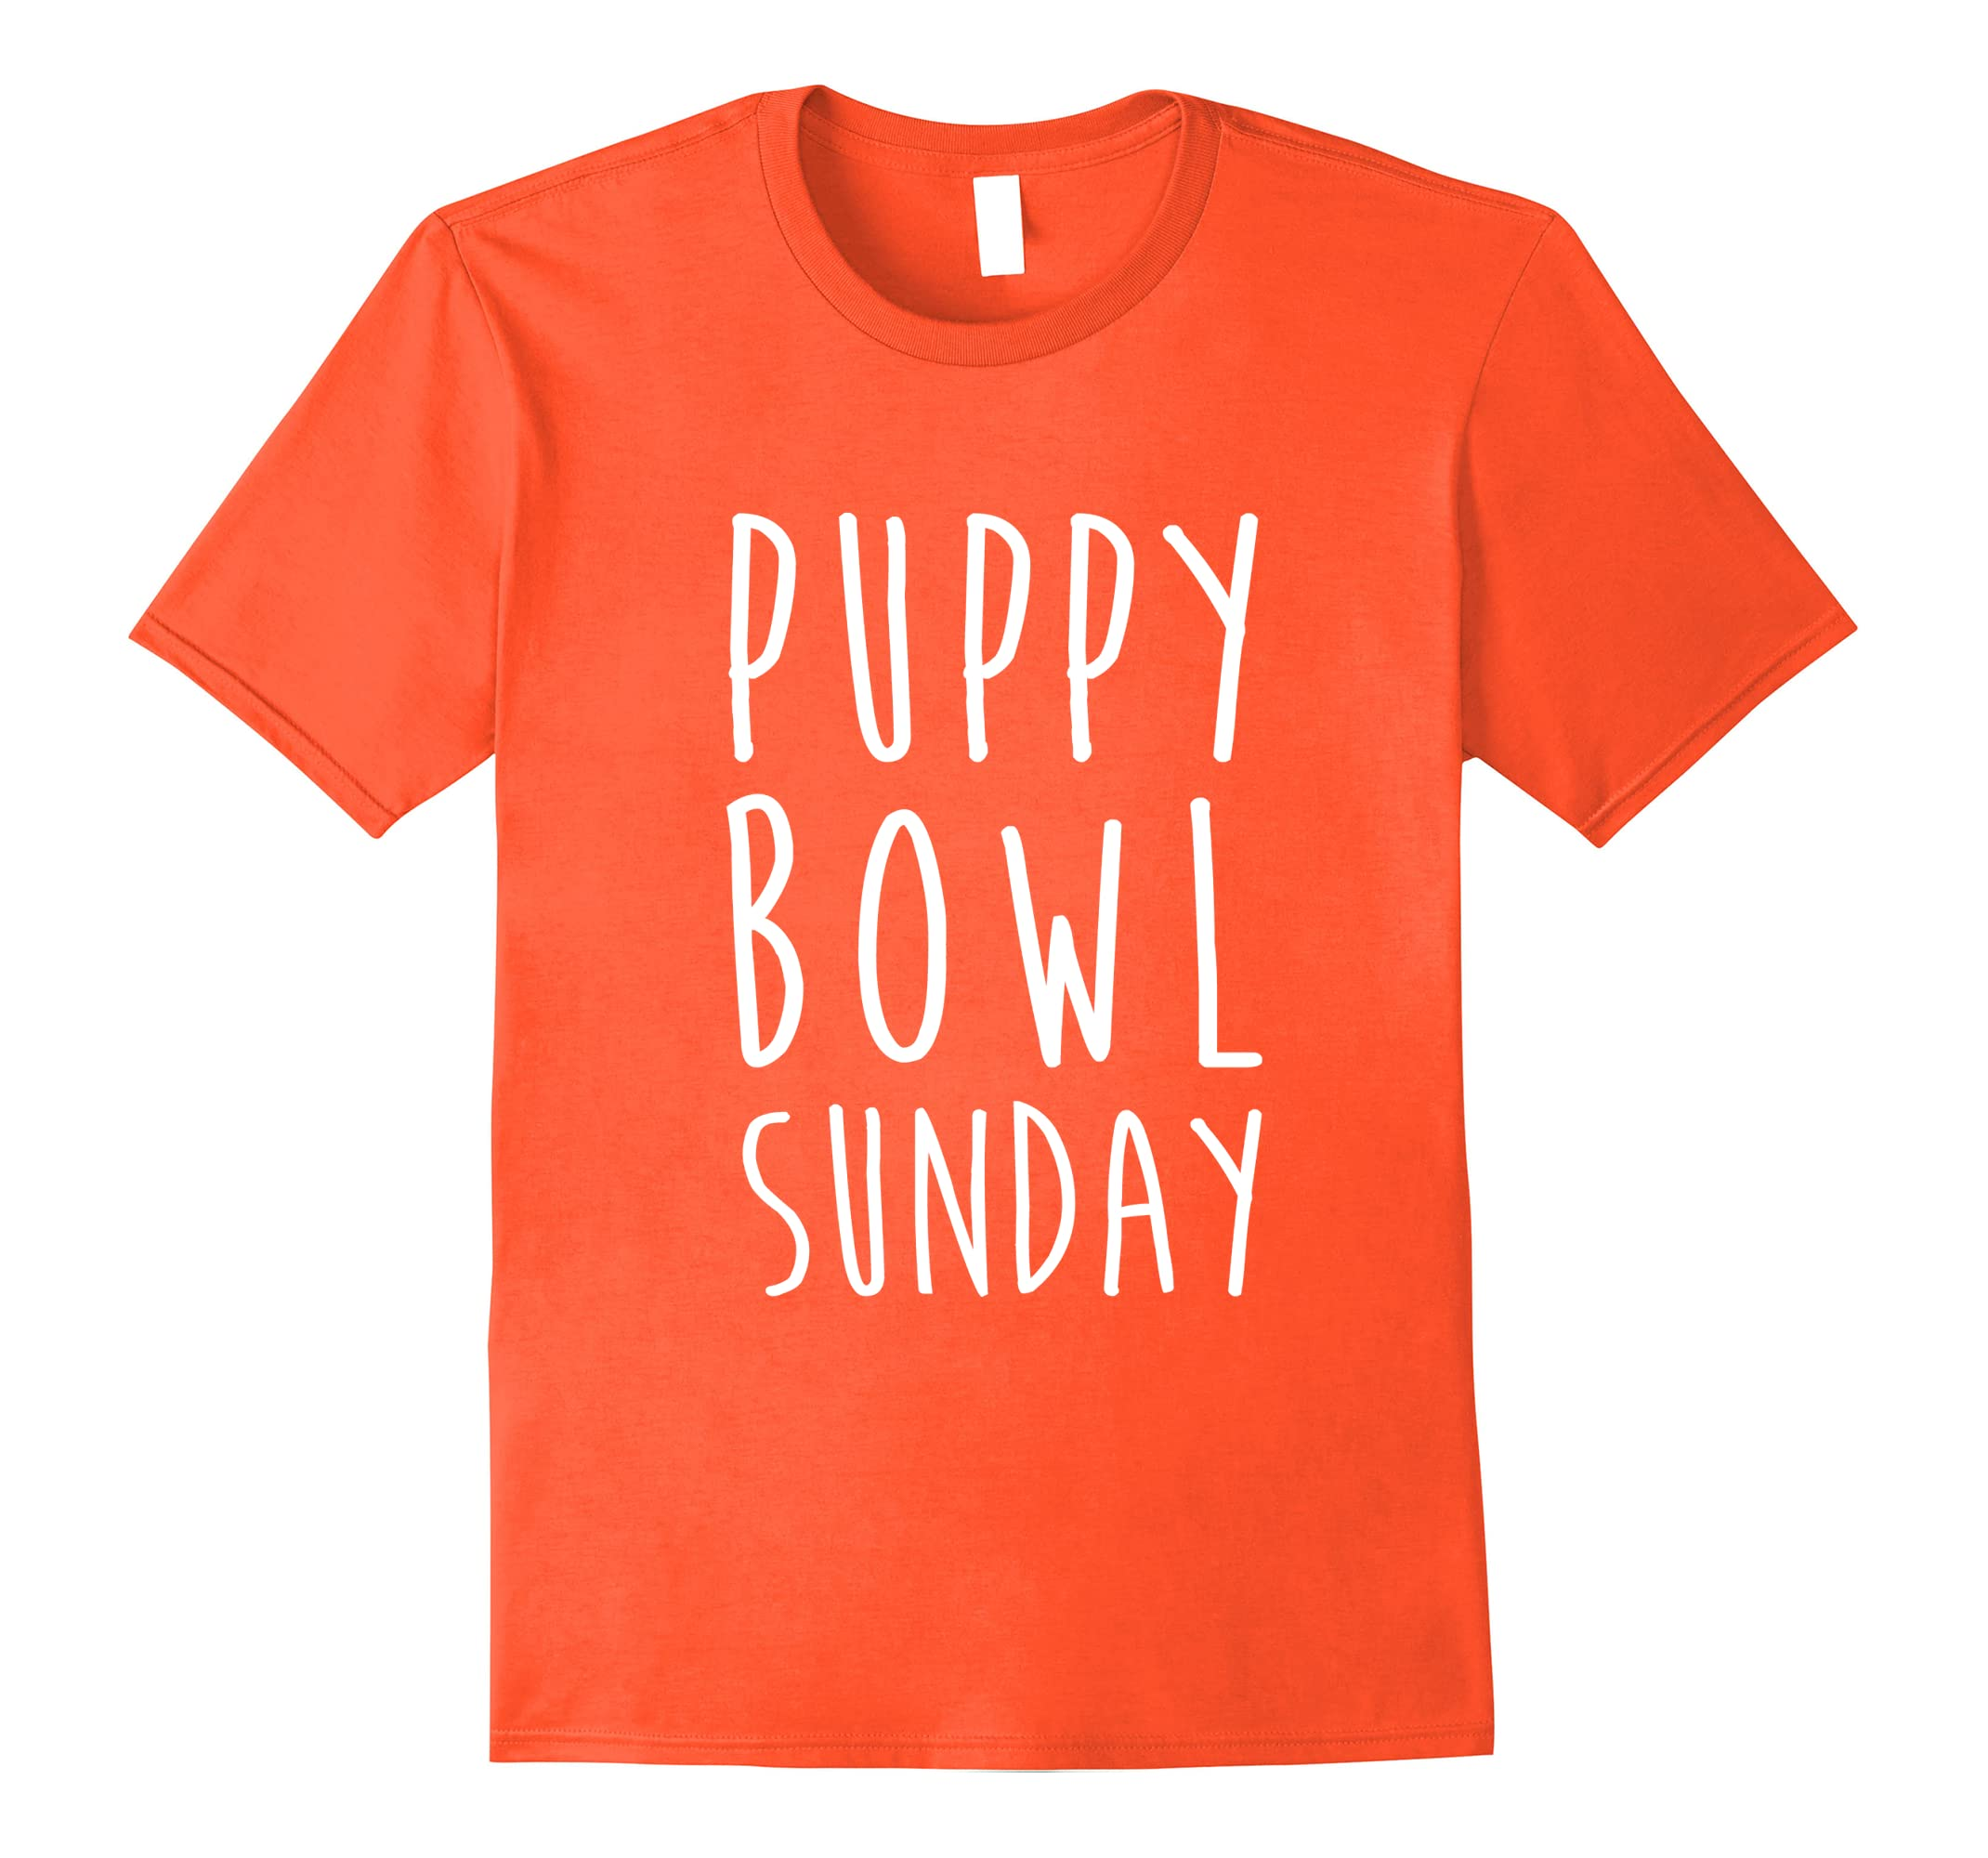 Puppy Bowl Sunday, Funny Football Shirt-RT